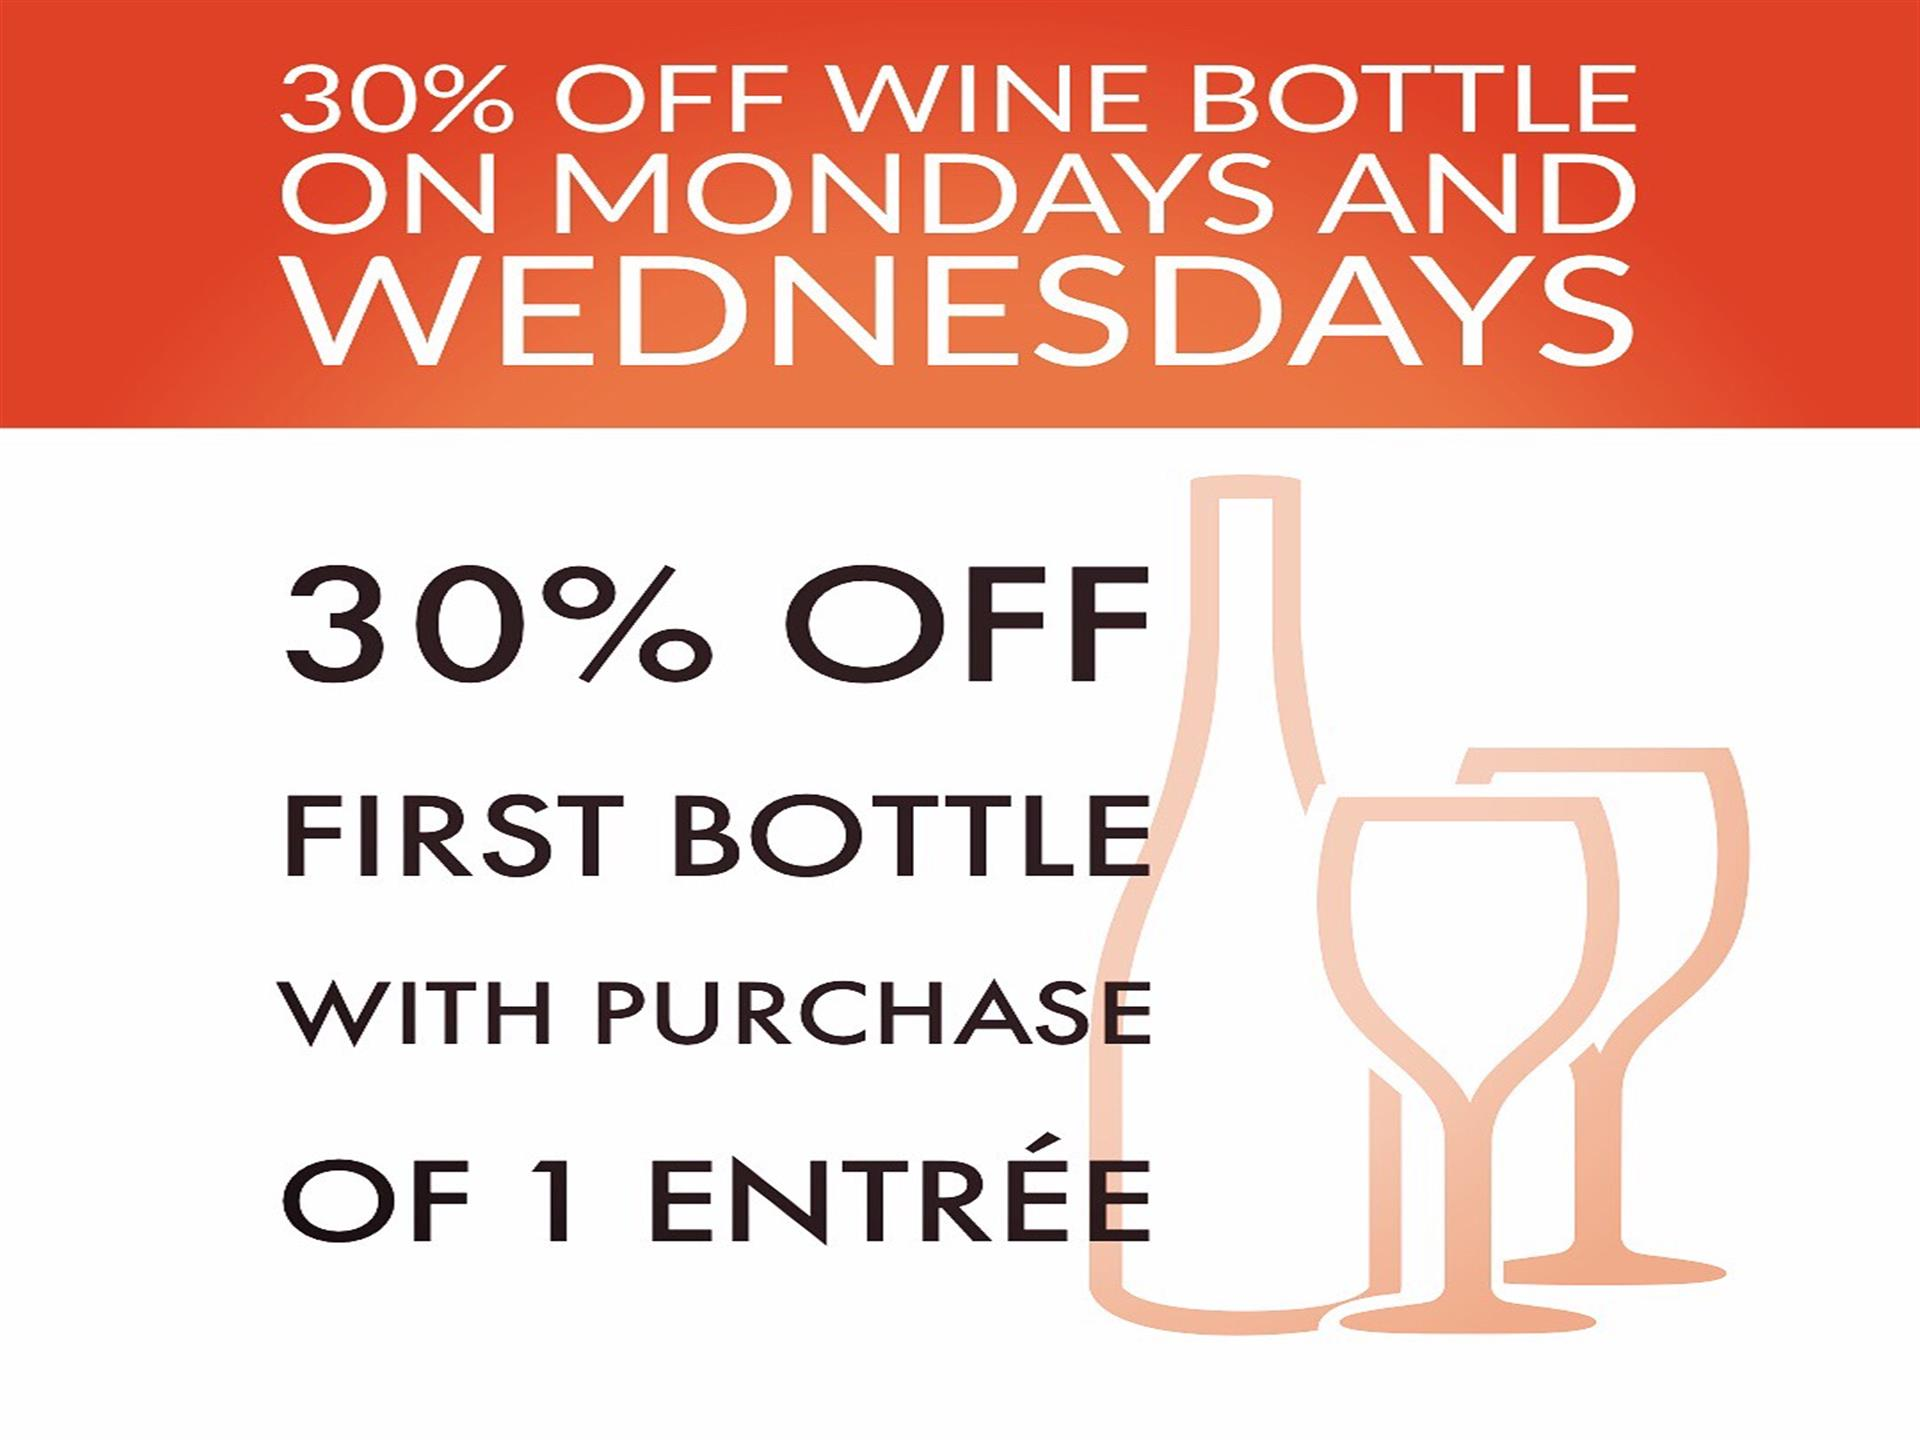 30% off wine bottle on mondays and wednesdays, first bottle with purchase of 1 entree